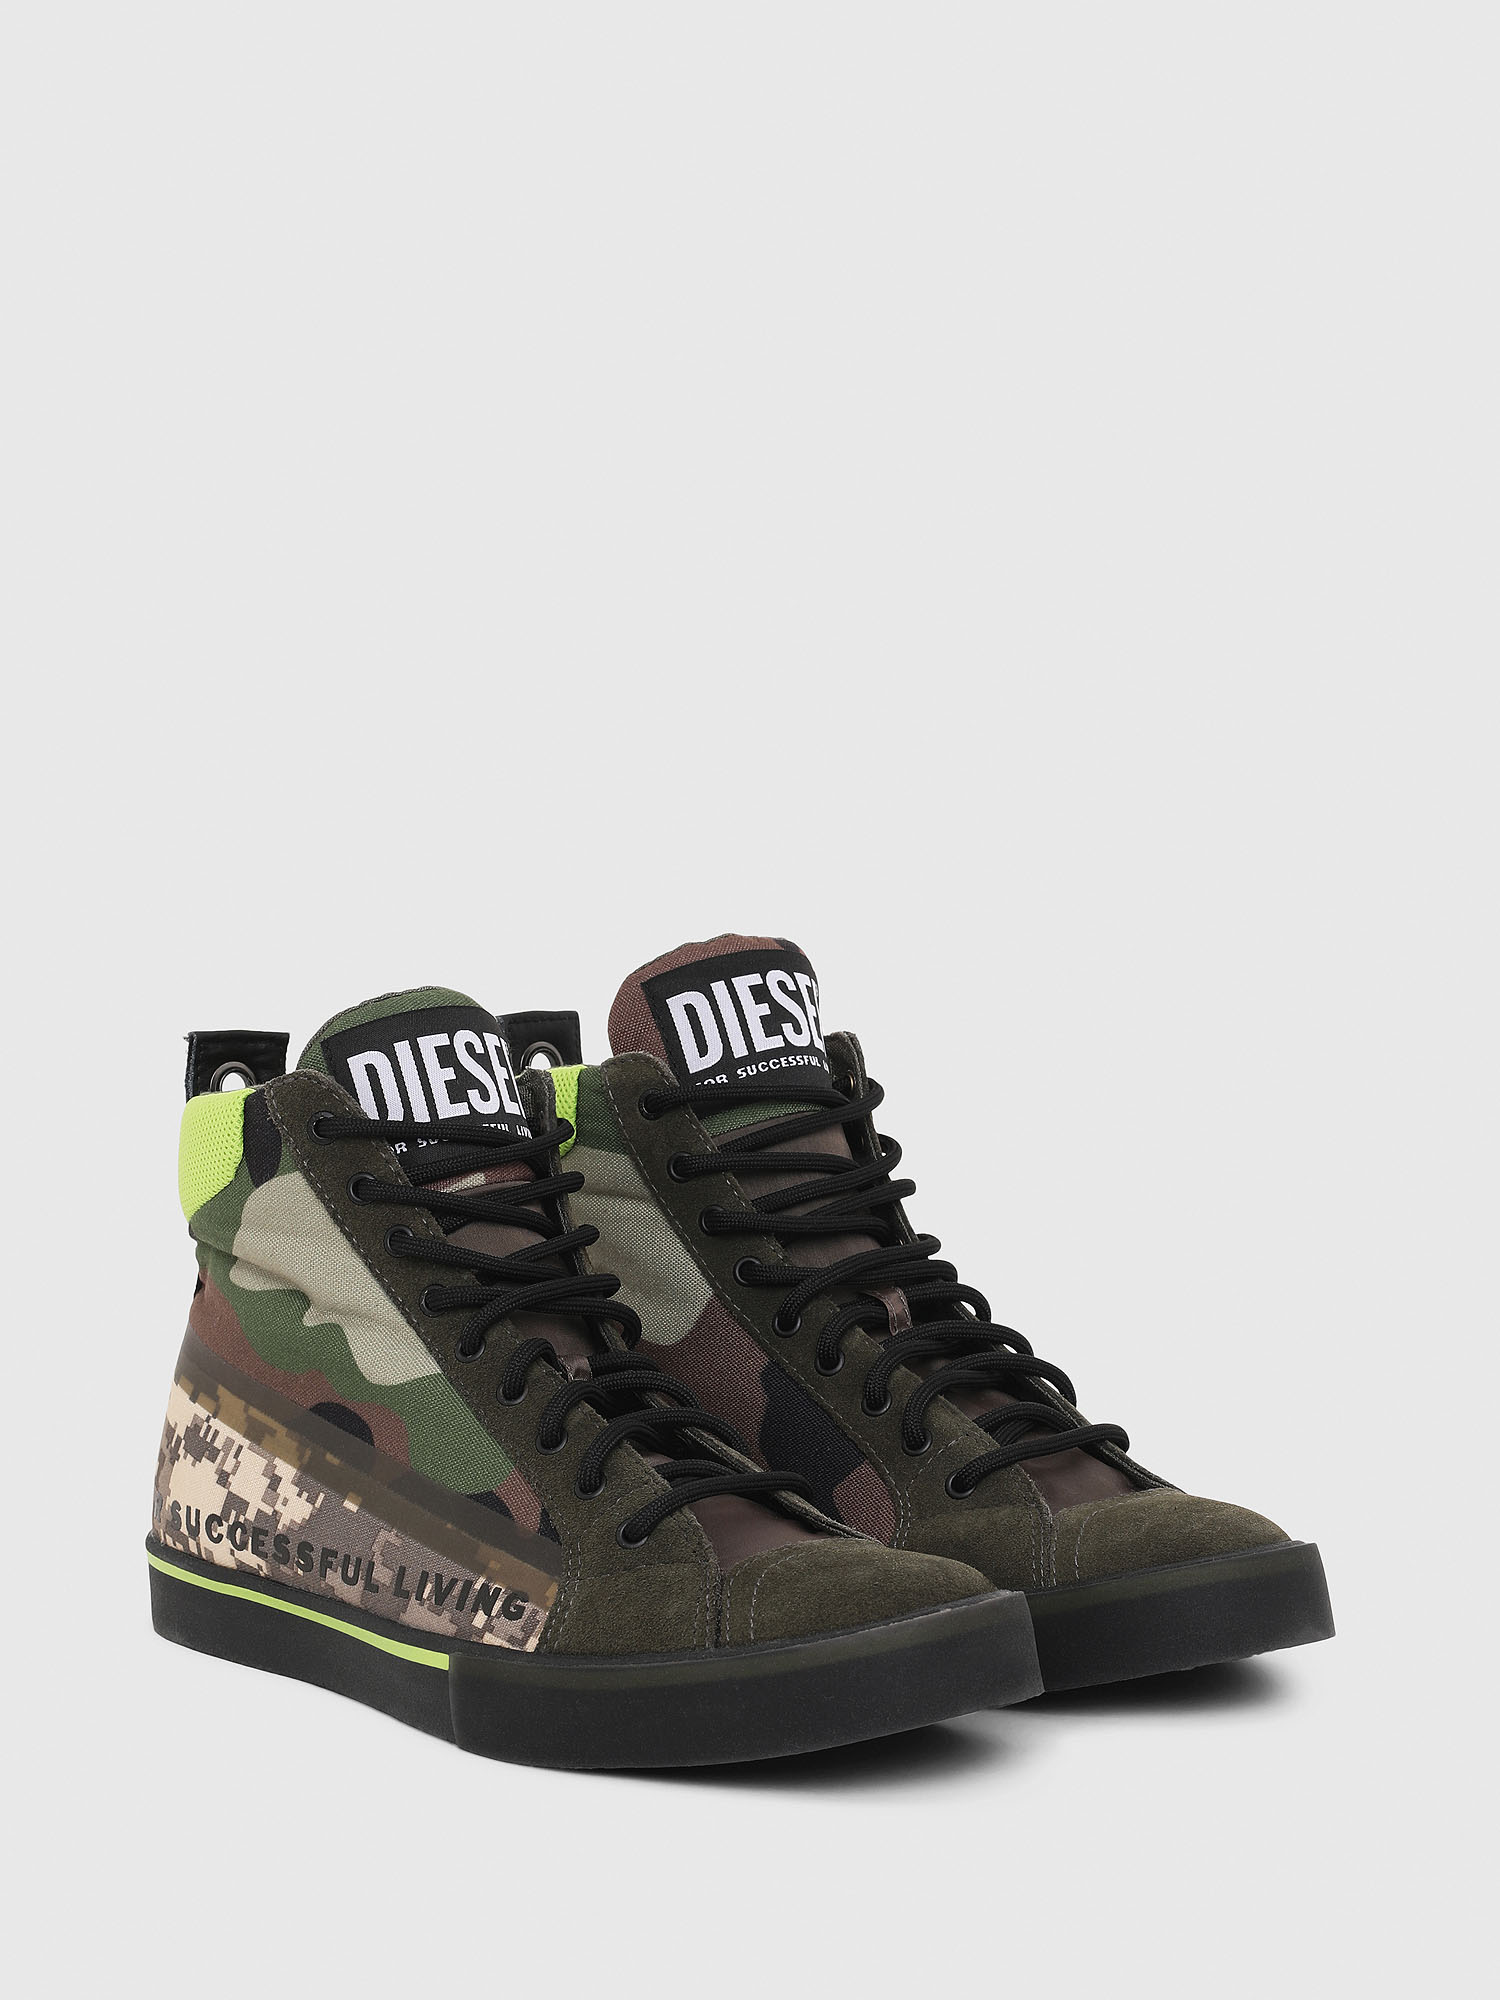 Diesel - S-DVELOWS MID,  - Baskets - Image 2